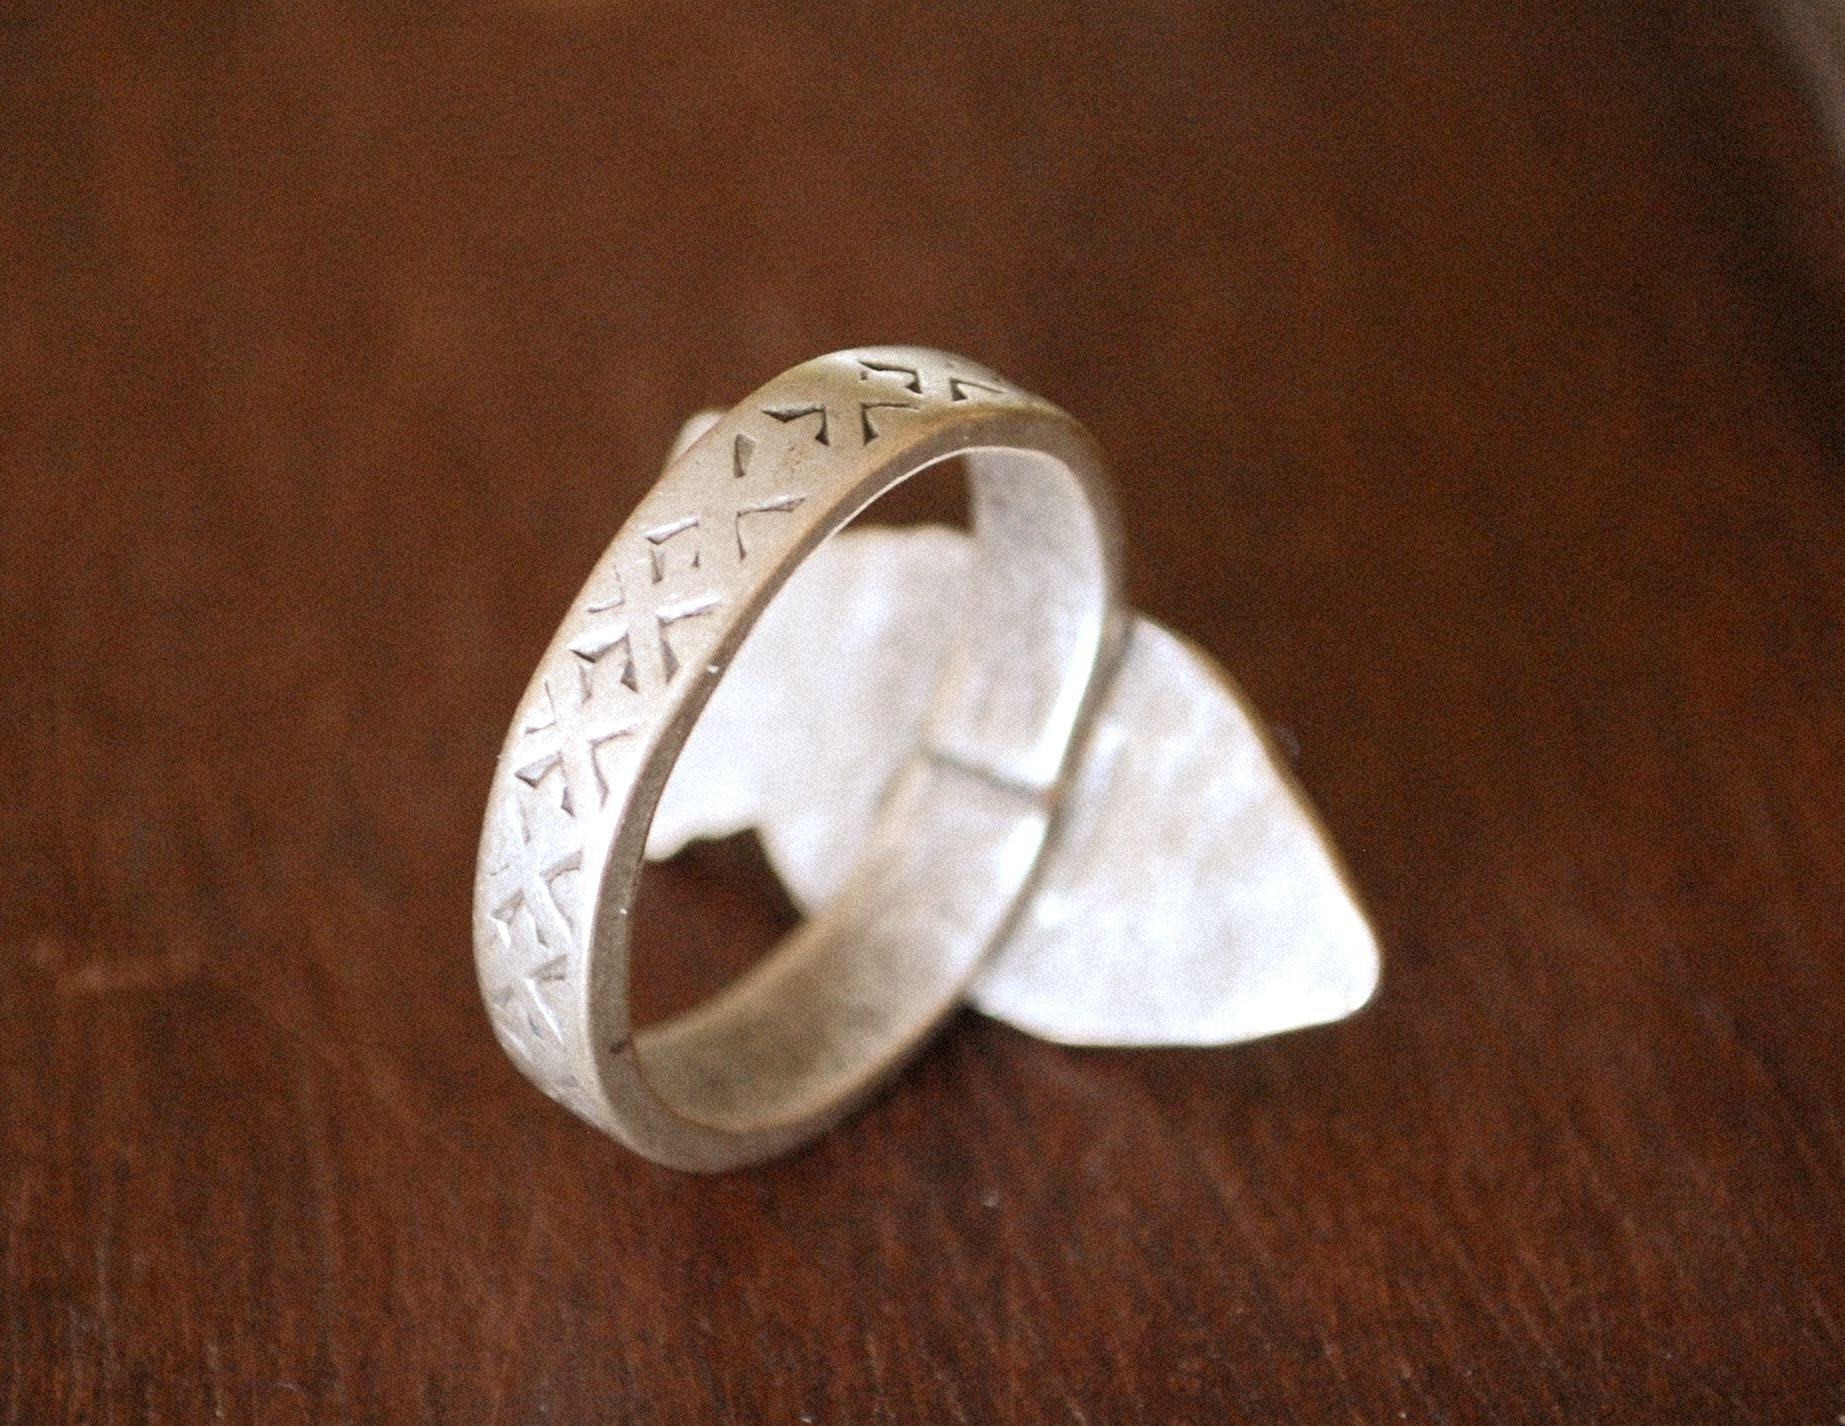 Tuareg Silver Fish Ring - Size 8 - Tuareg Jewelry - Tuareg Ring - Tribal Jewelry - Tribal Ring